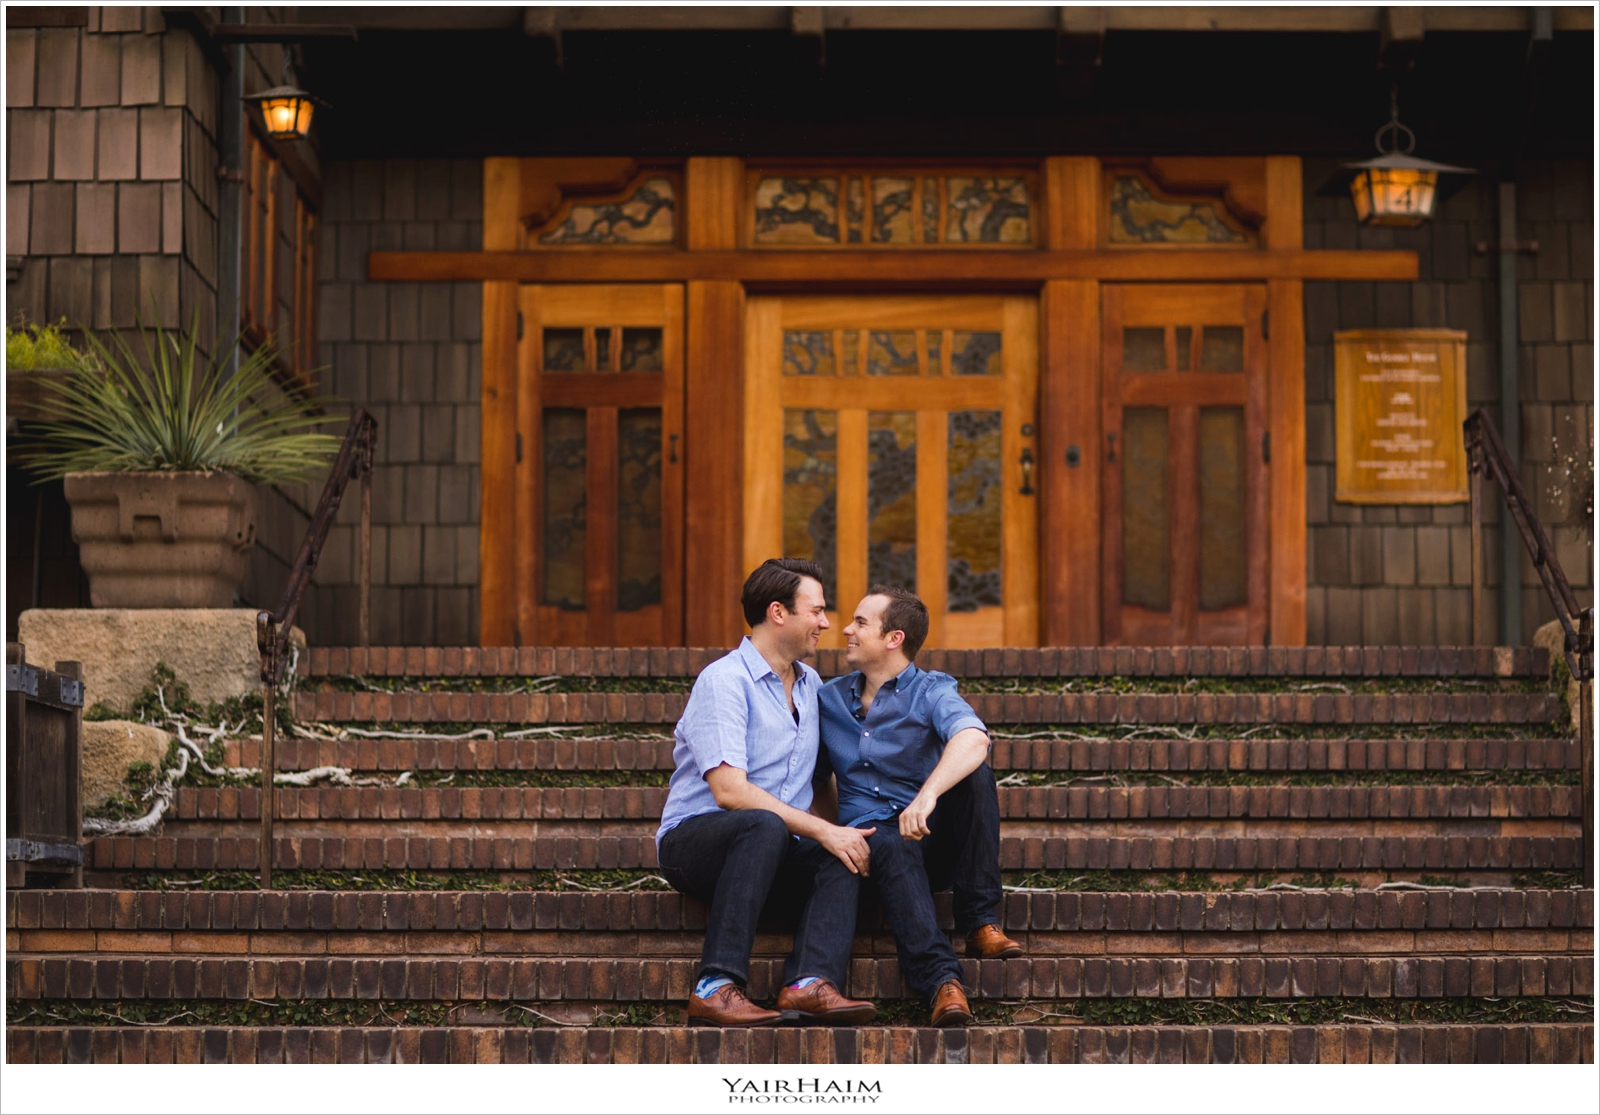 The-Gamble-house-pasadena-engagement-photos-same-sex-gay-3